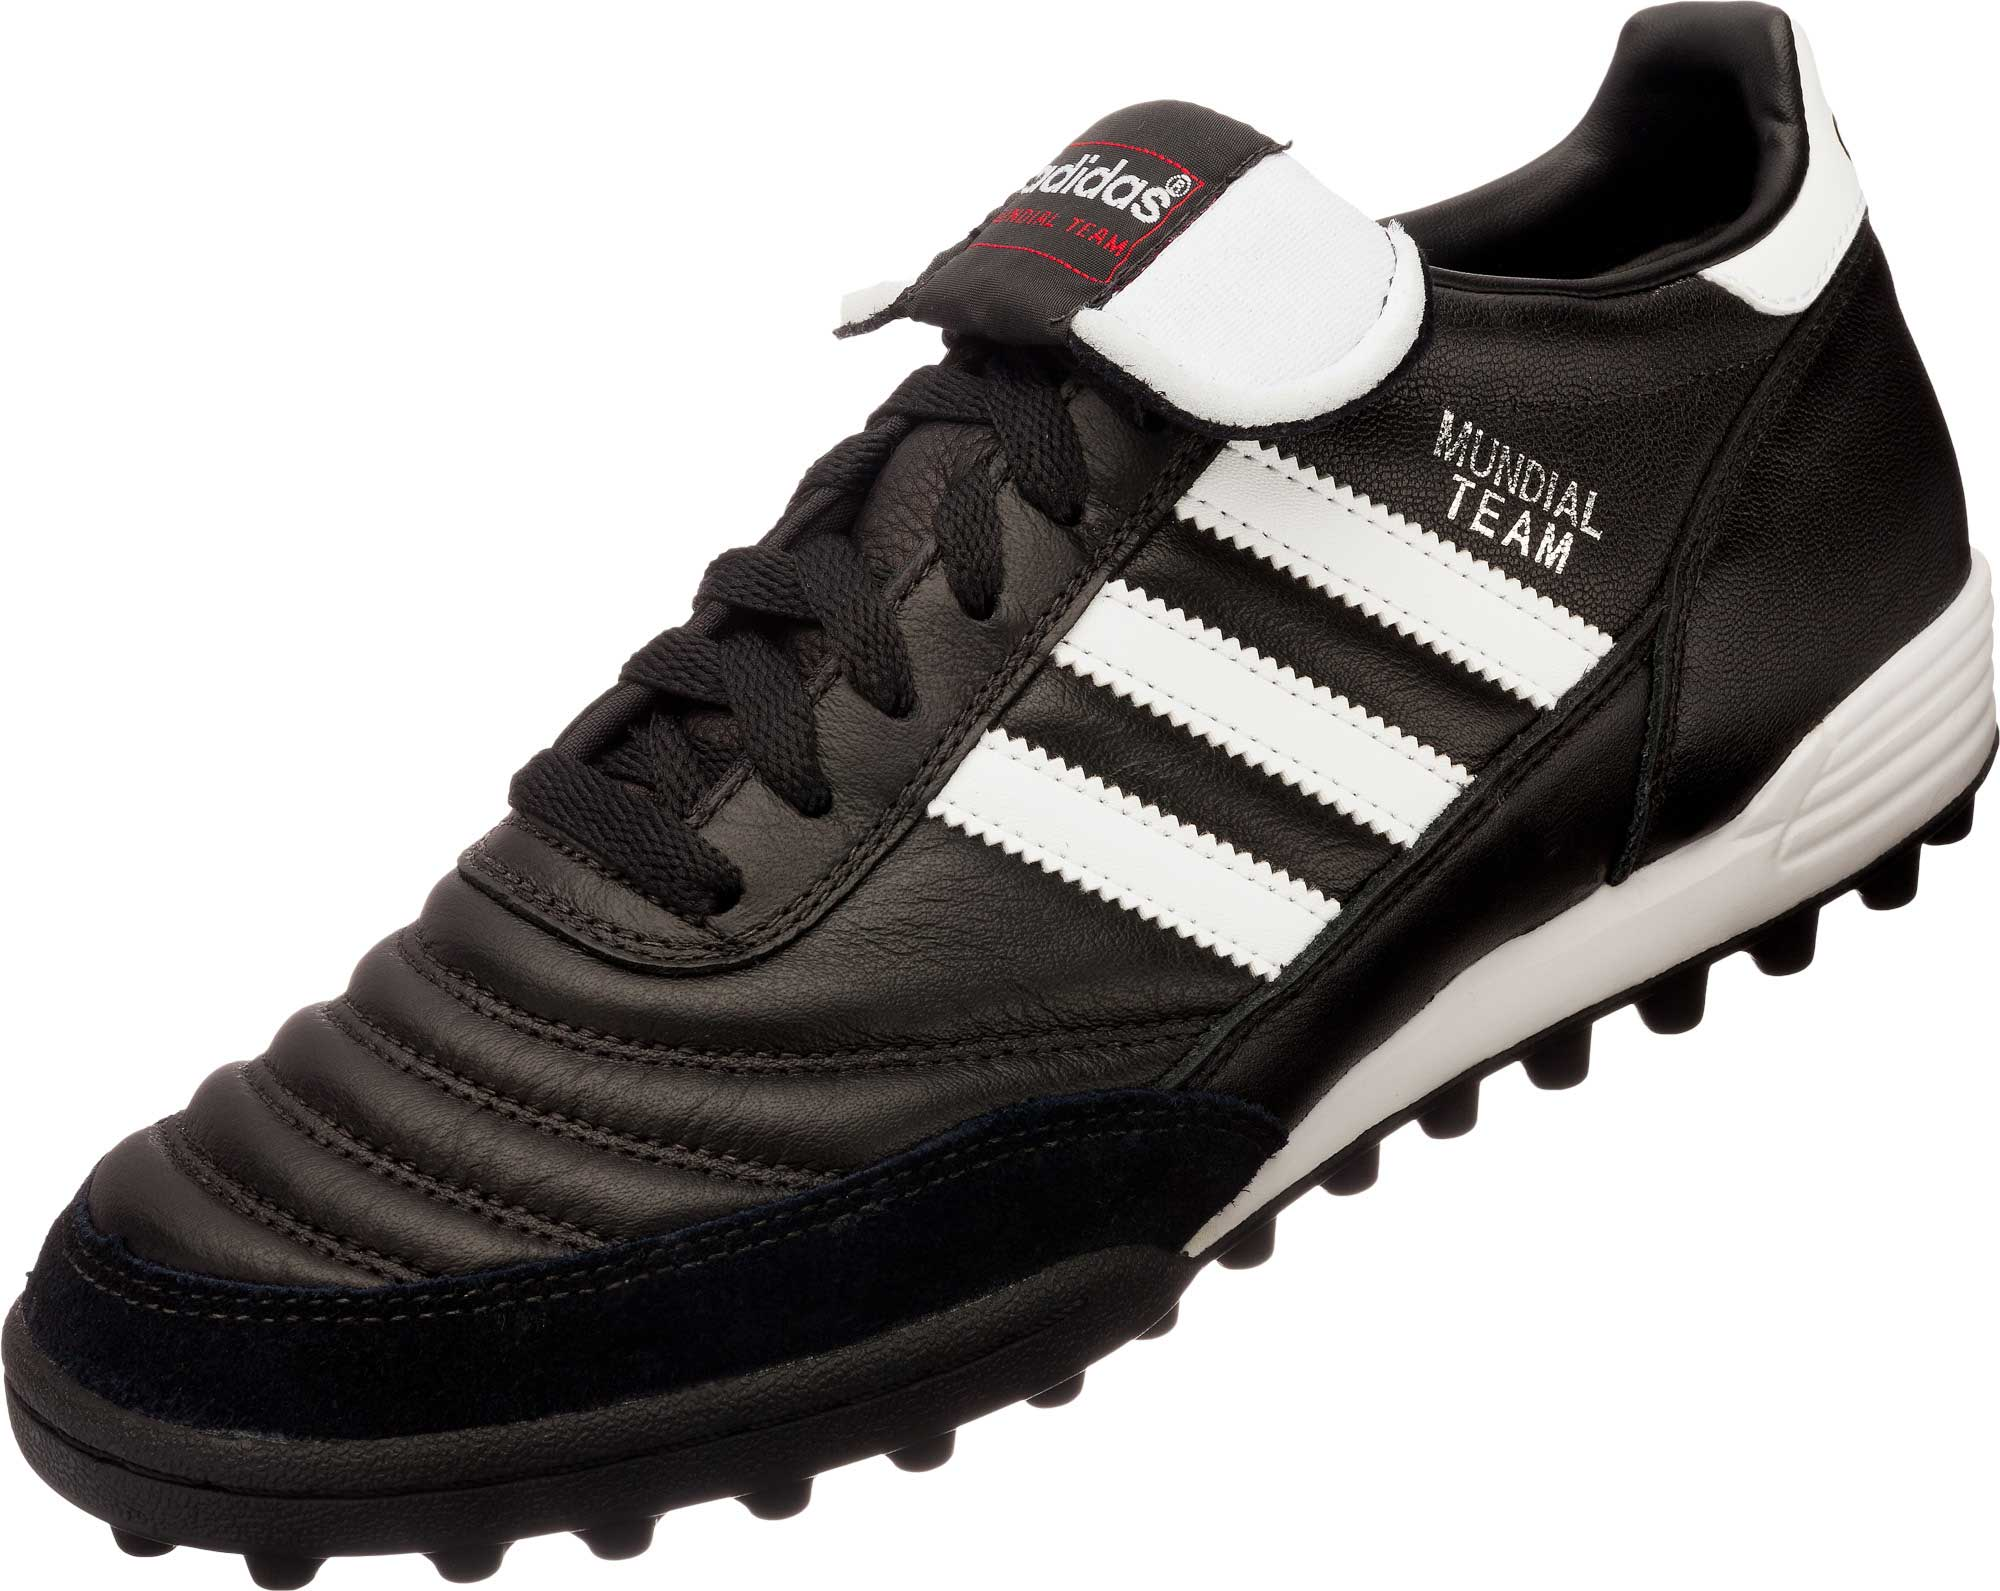 competitive price 302f1 5d0e3 adidas Mundial Team Turf Soccer Shoe